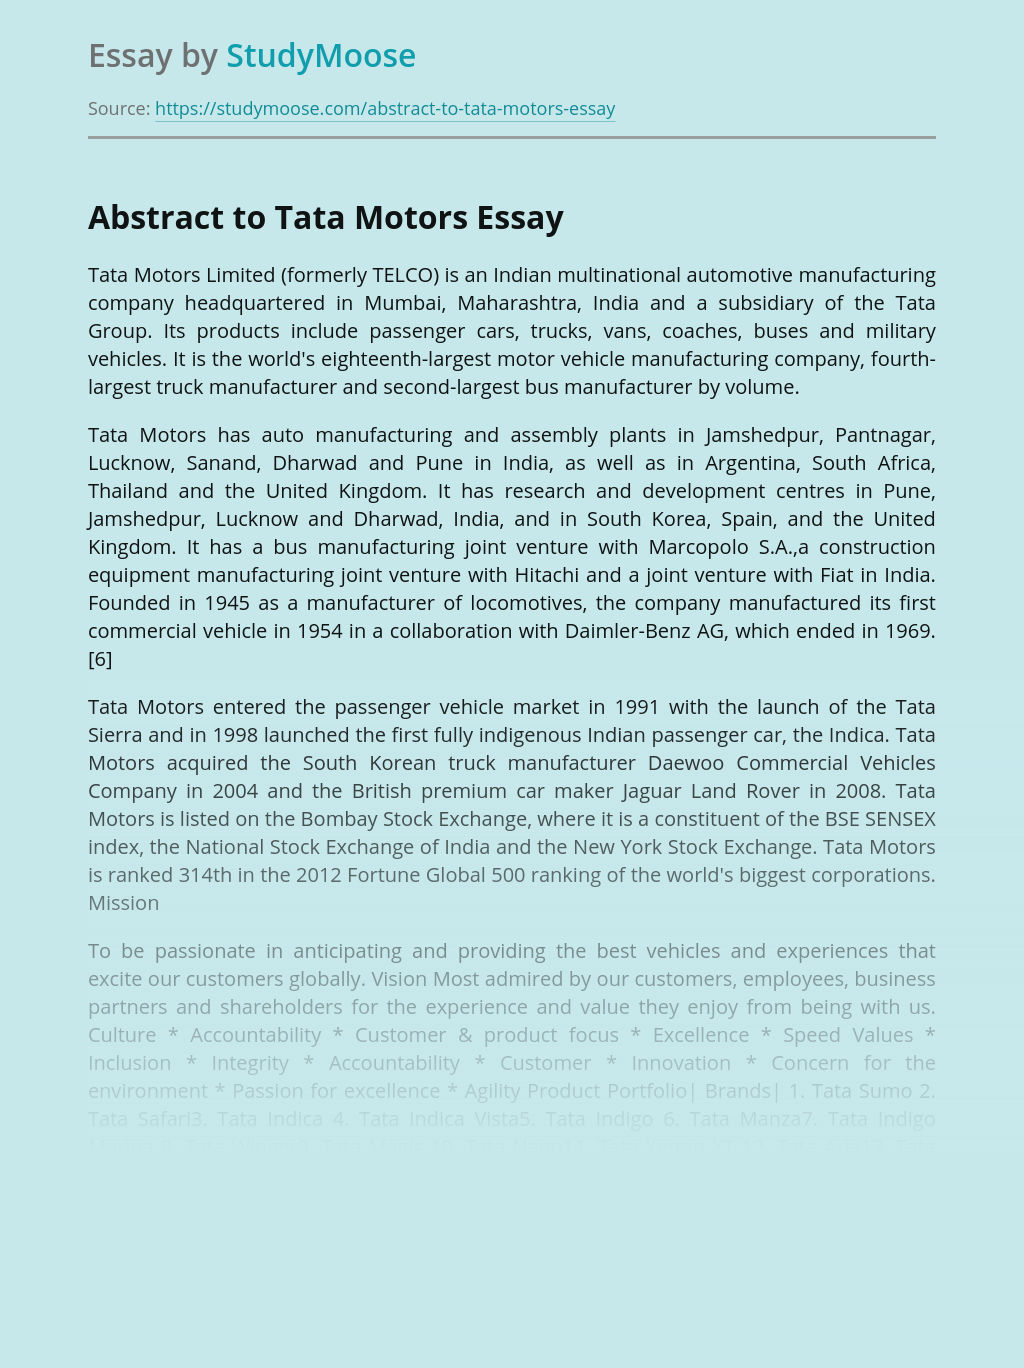 Abstract to Tata Motors Limited